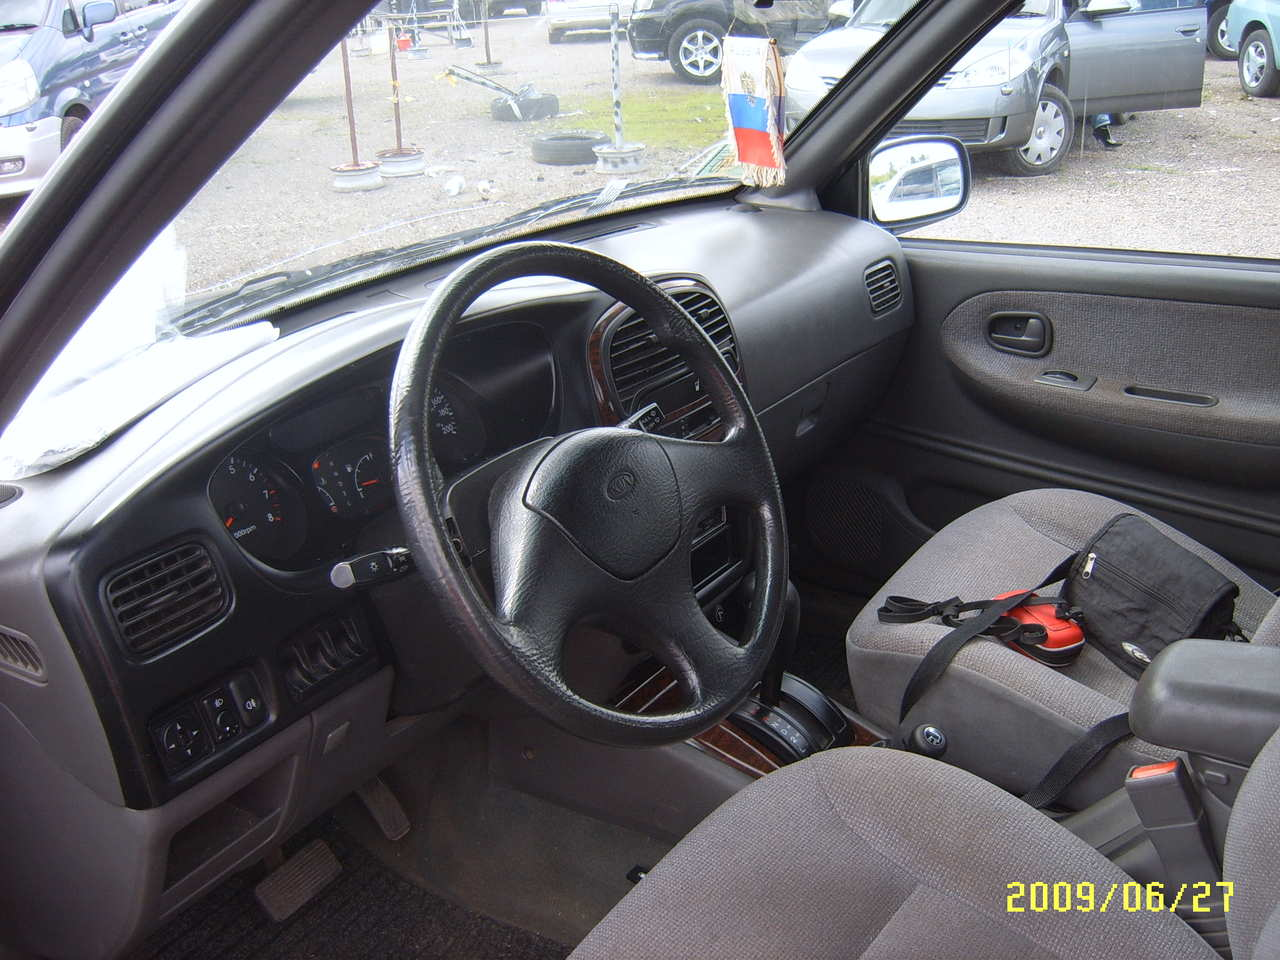 used 2001 kia sportage photos 2000cc gasoline automatic for sale. Black Bedroom Furniture Sets. Home Design Ideas